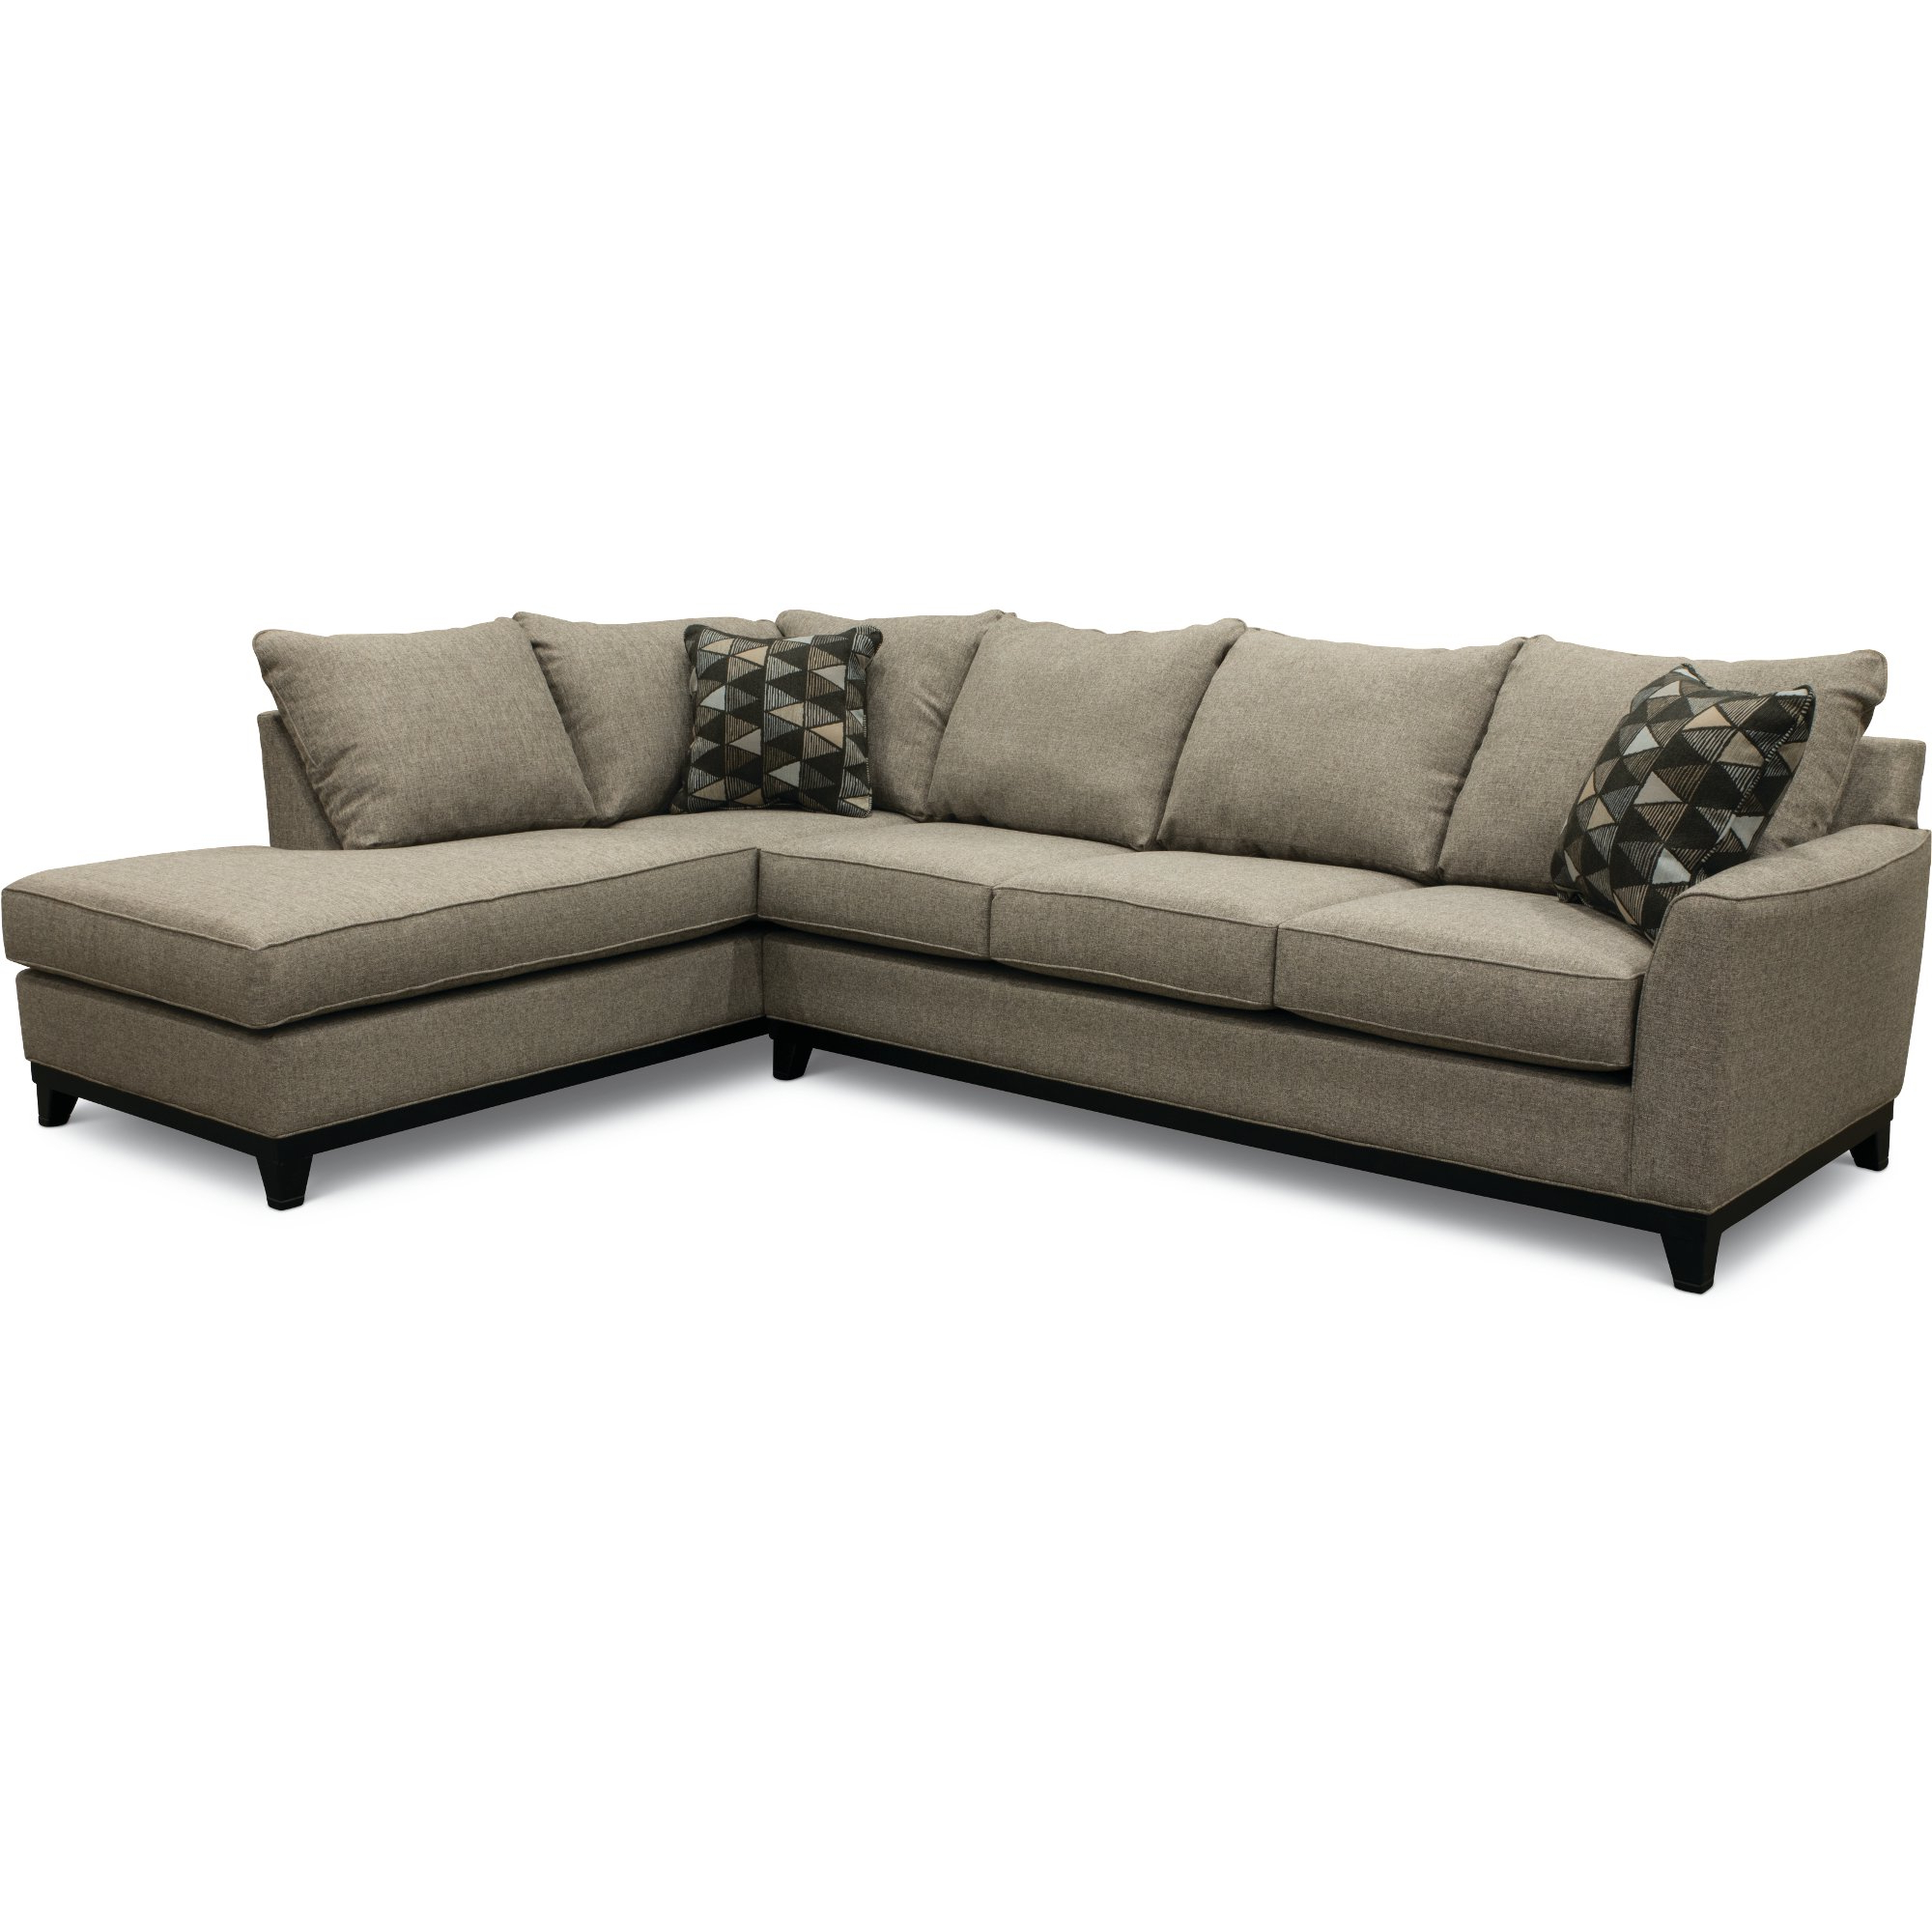 Trendy Casual Contemporary Slate Gray 2 Piece Sectional Sofa – Emerson (View 11 of 20)